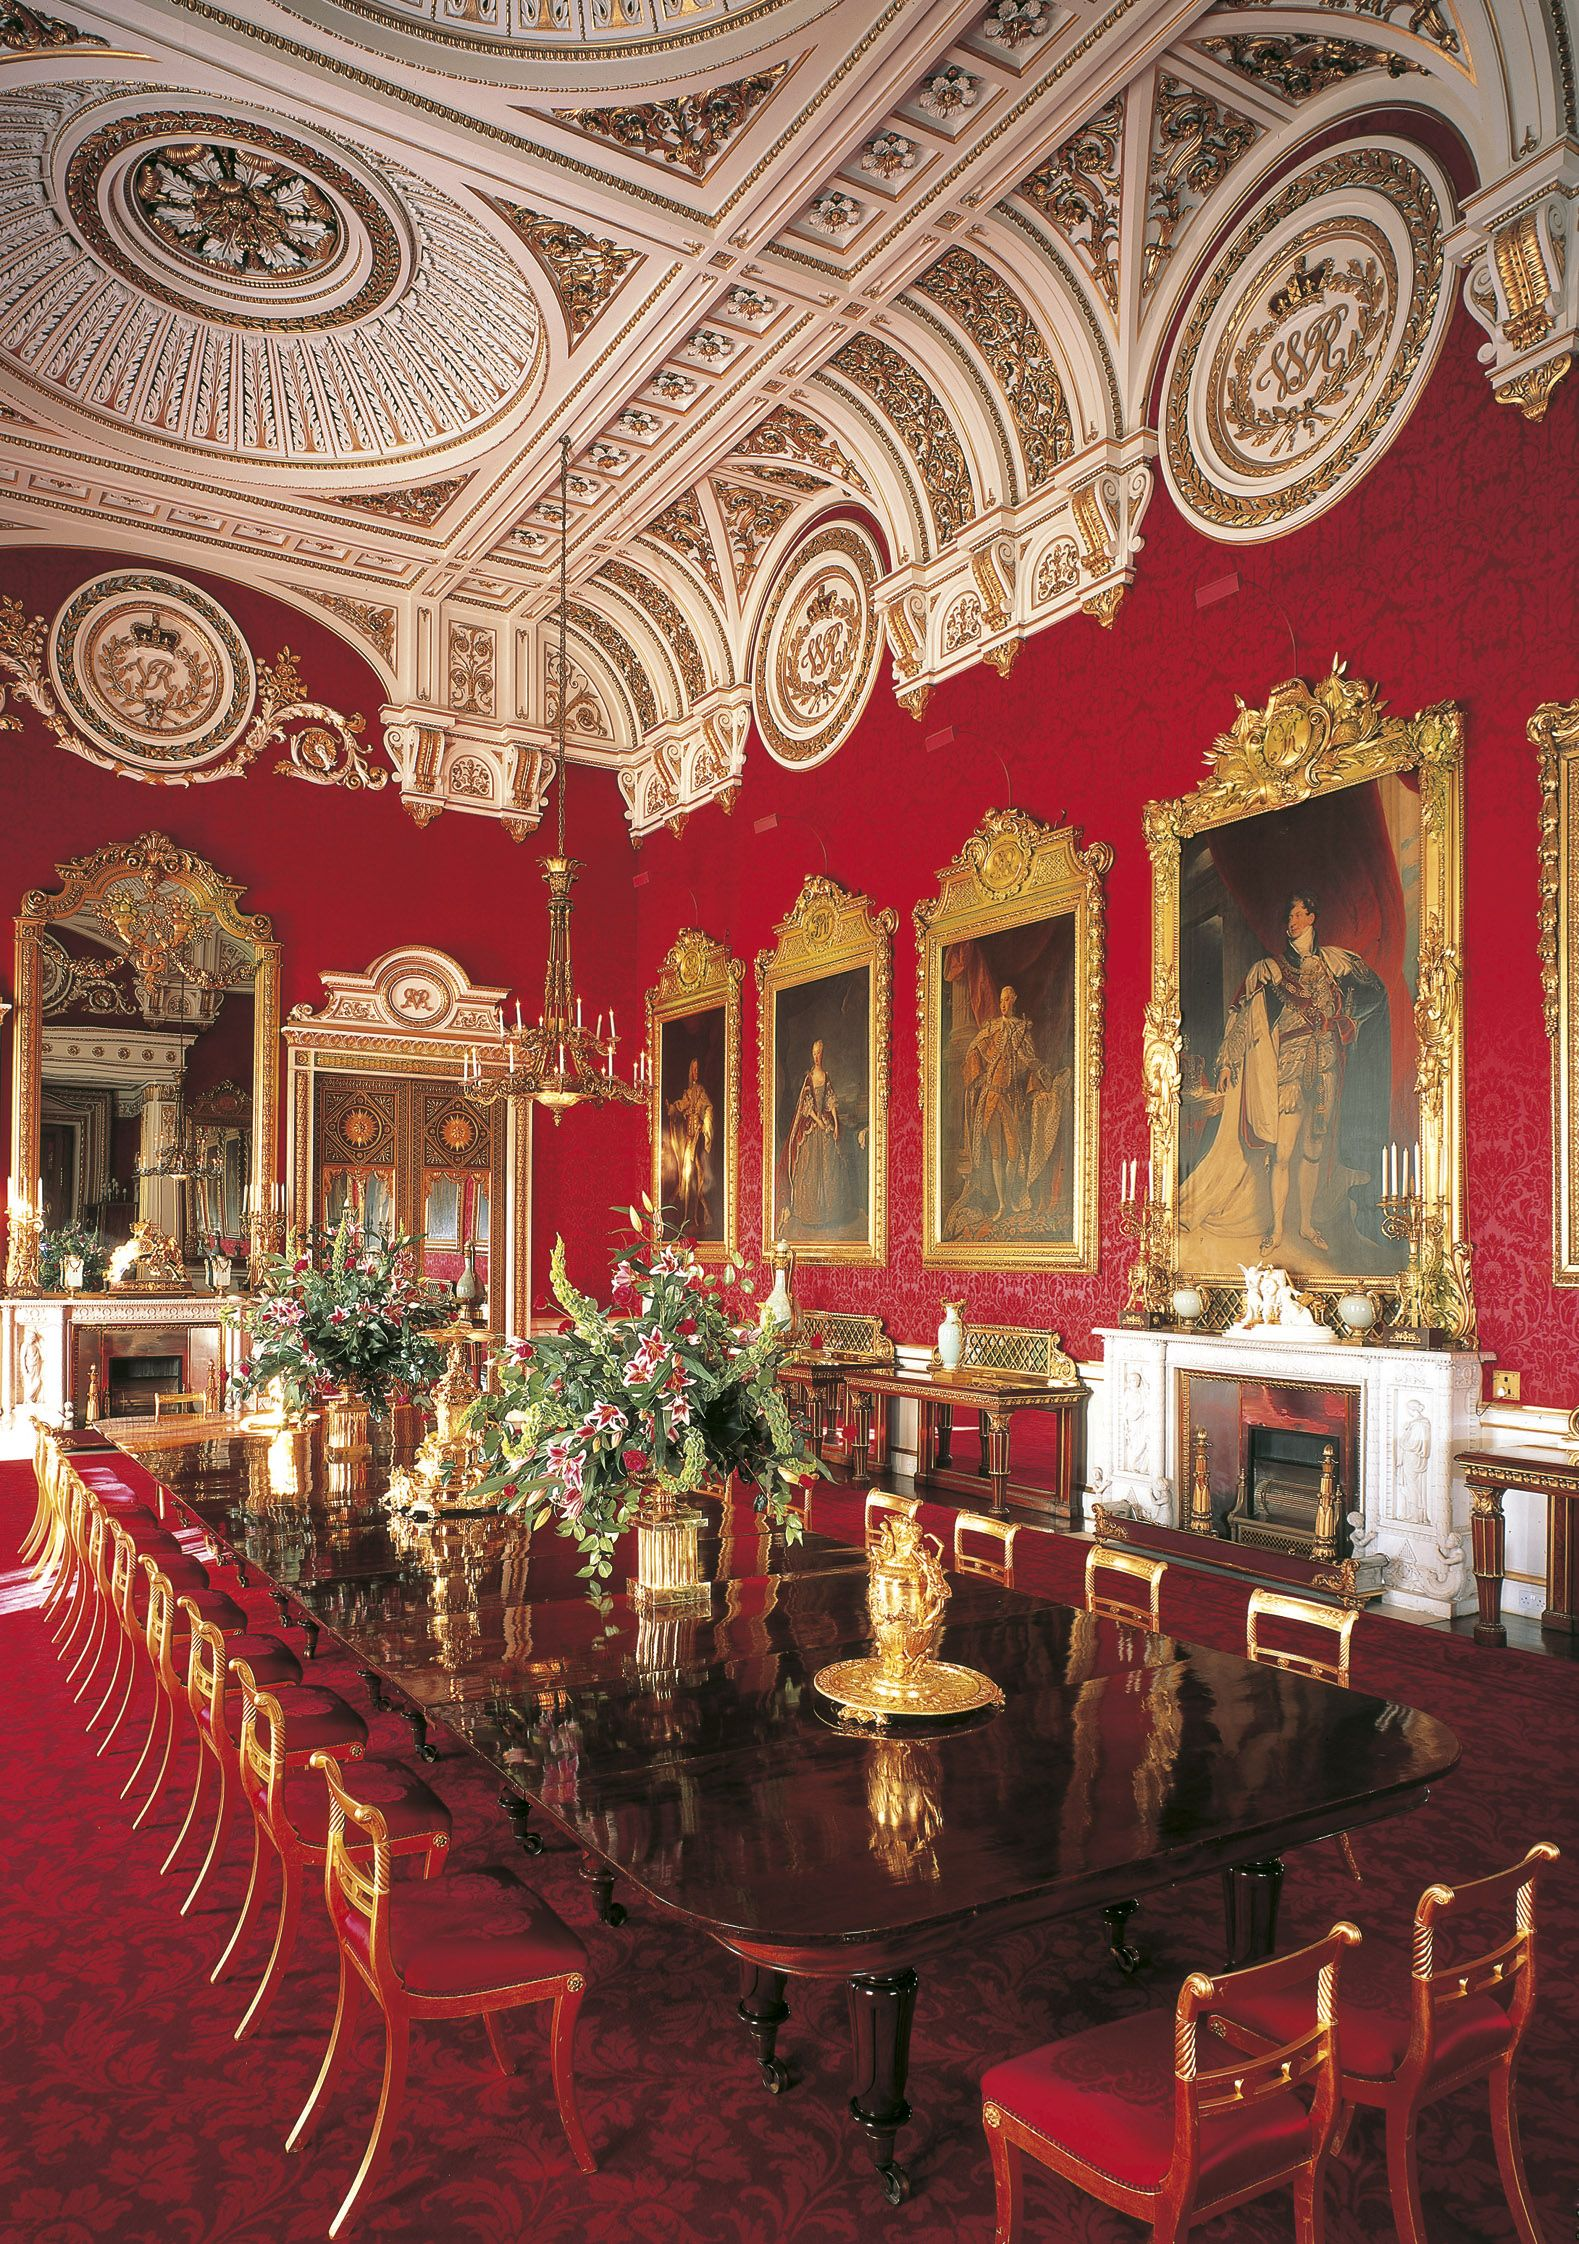 Royal Interior of The State Dining Room at Buckingham Palace - is the official London residence and principal workplace of the British monarch, located in the City of Westminster